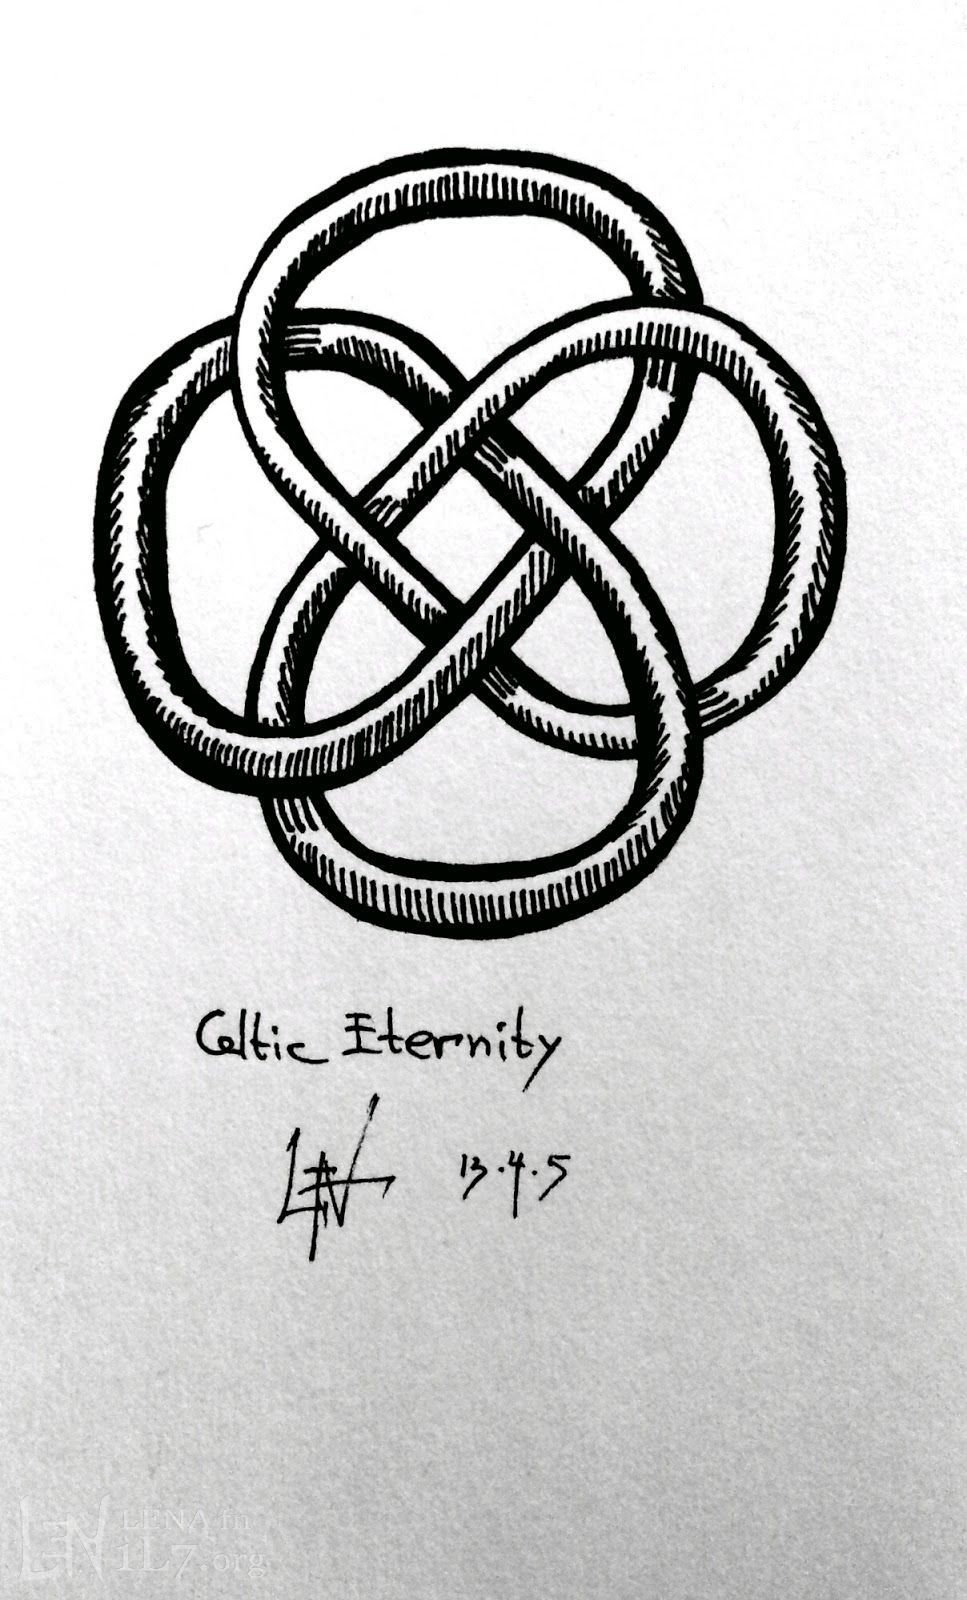 Celtic eternity knot representing the ups and downs of life and celtic eternity knot representing the ups and downs of life and its unbroken biocorpaavc Choice Image